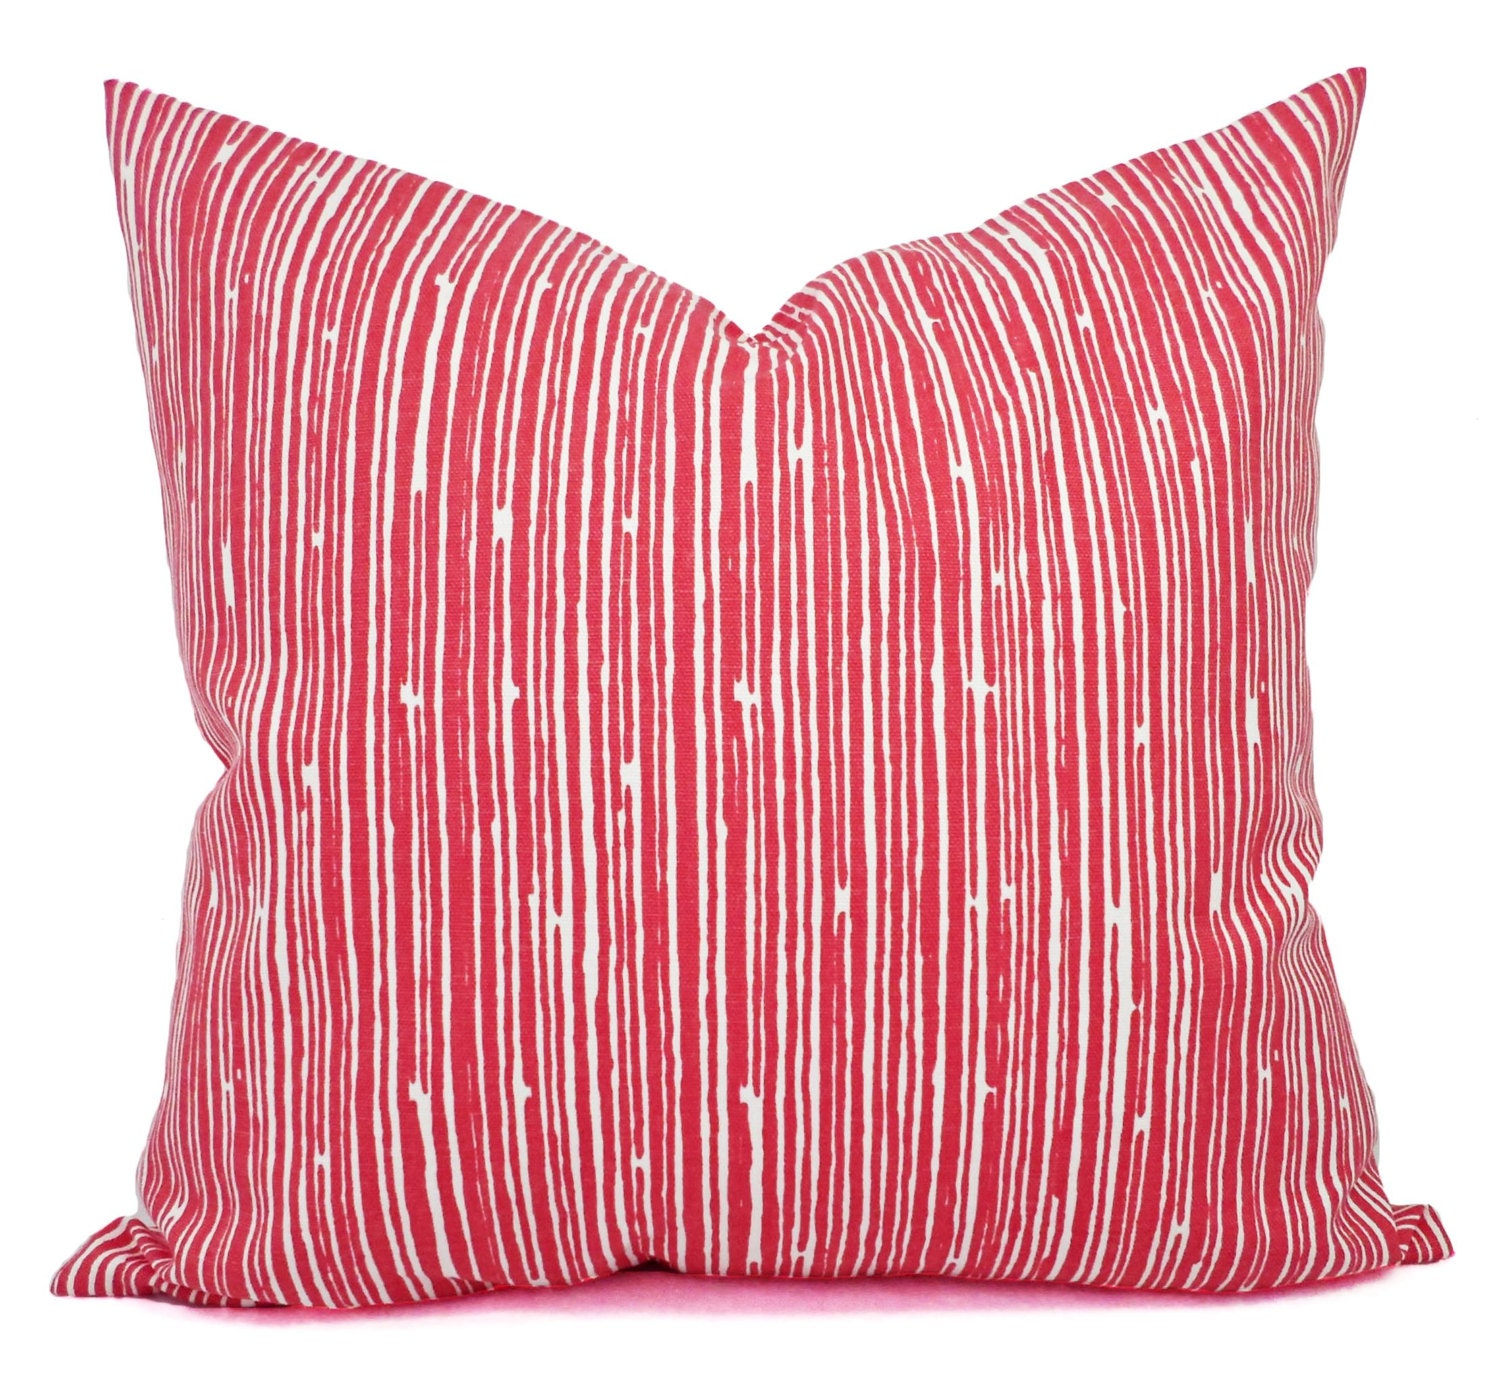 Decorative Pillows With Stripes : Coral Throw Pillows Pillows Coral Stripe Decorative Throw